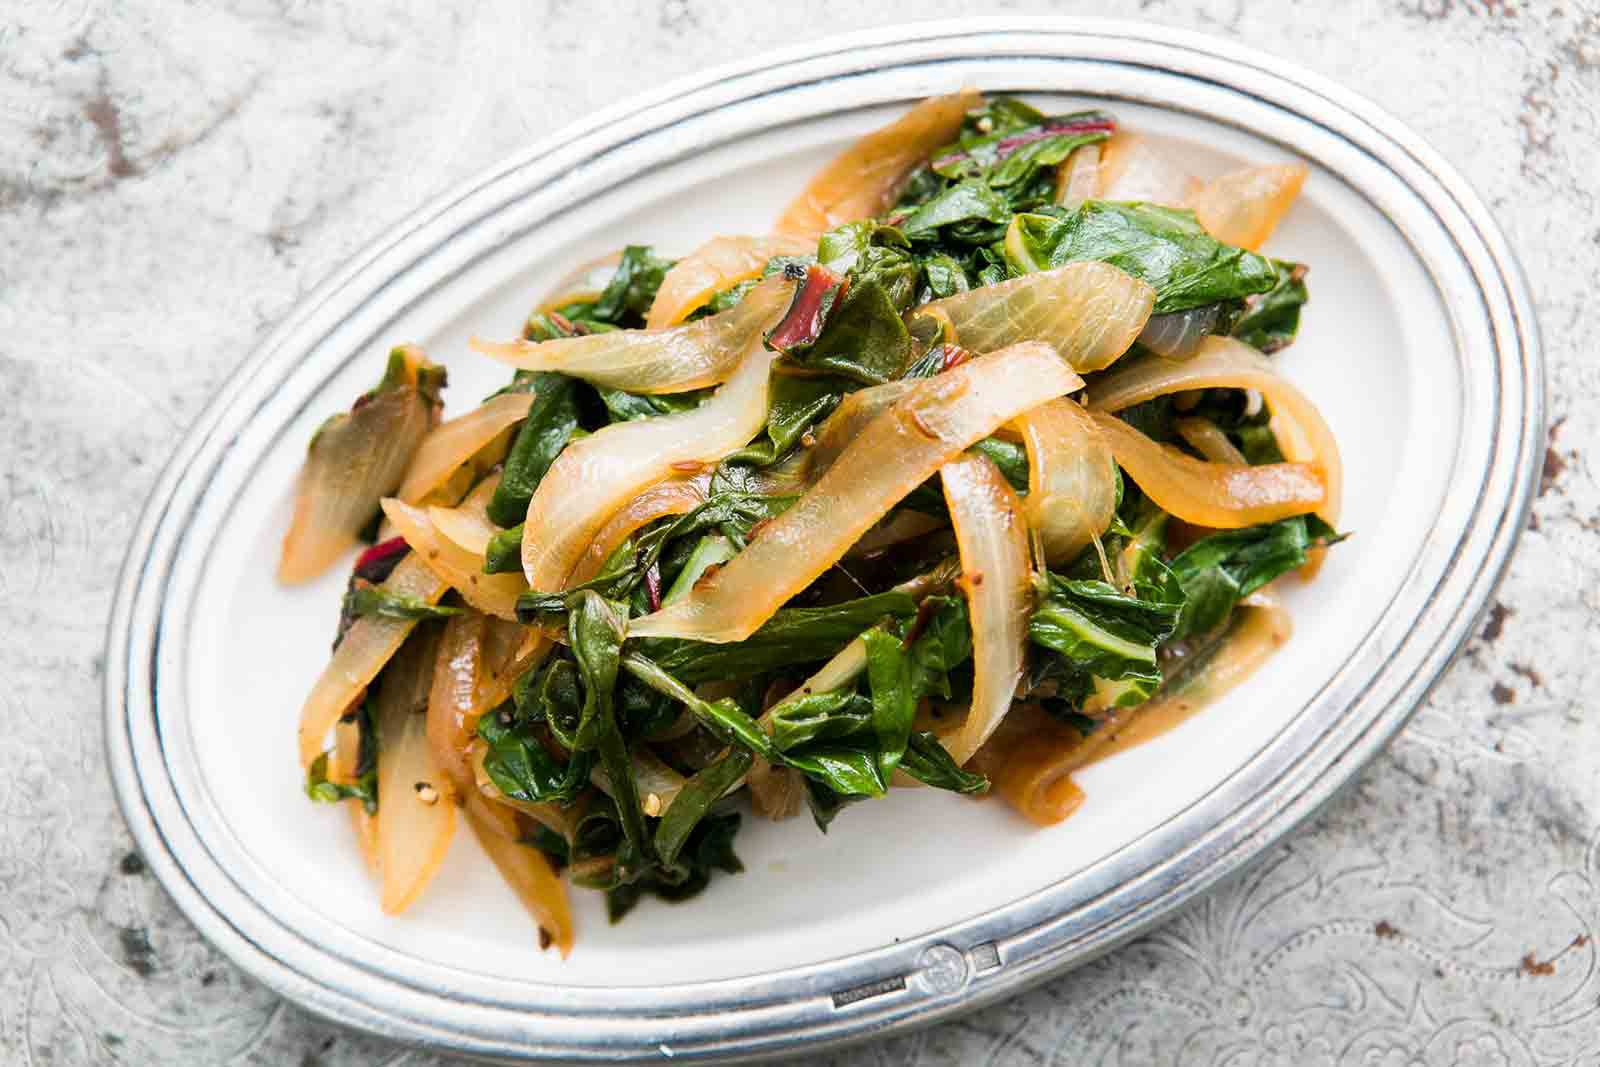 Sauteed Chard with Onions and Caraway